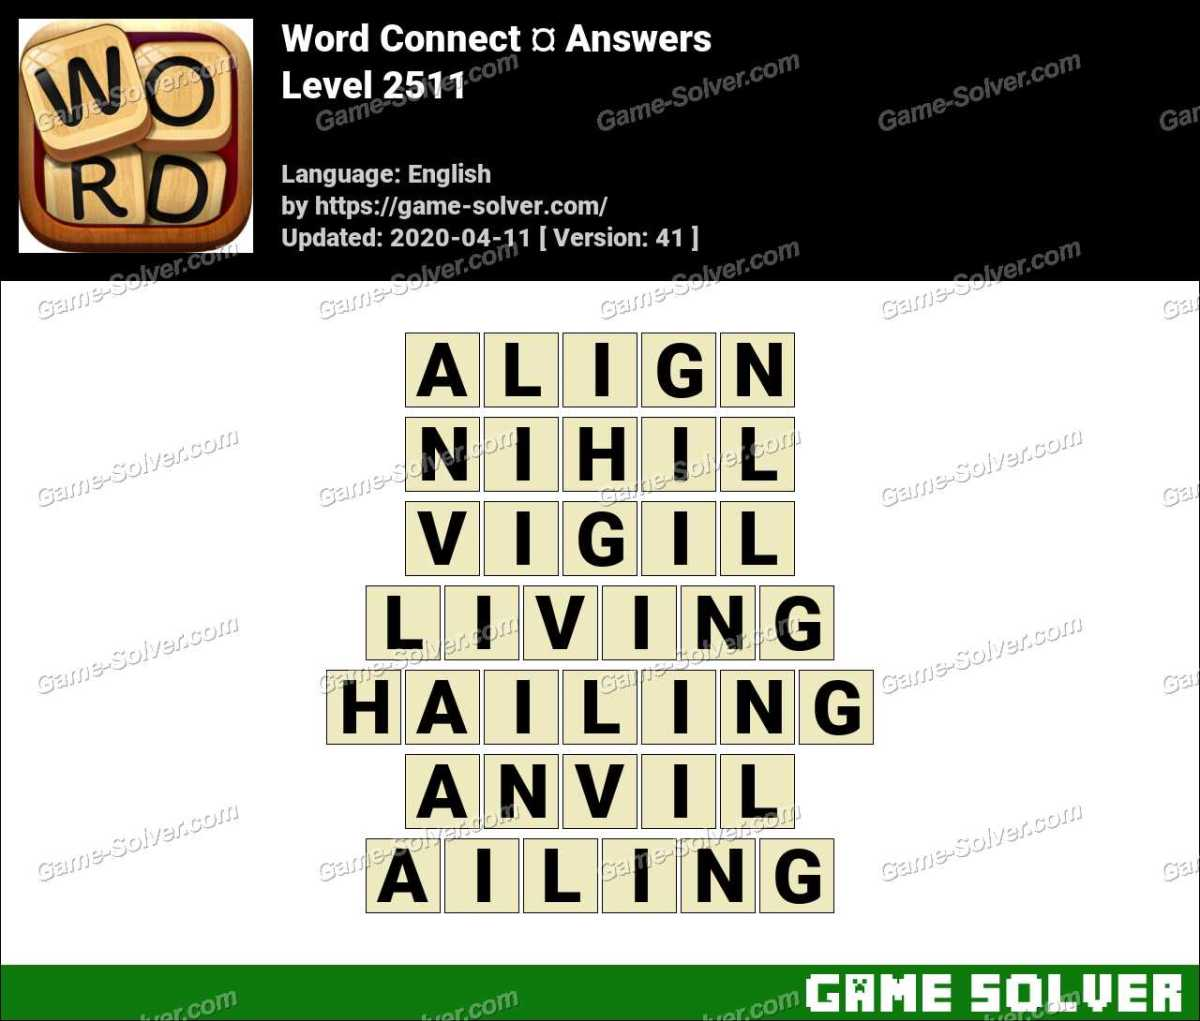 Word Connect Level 2511 Answers